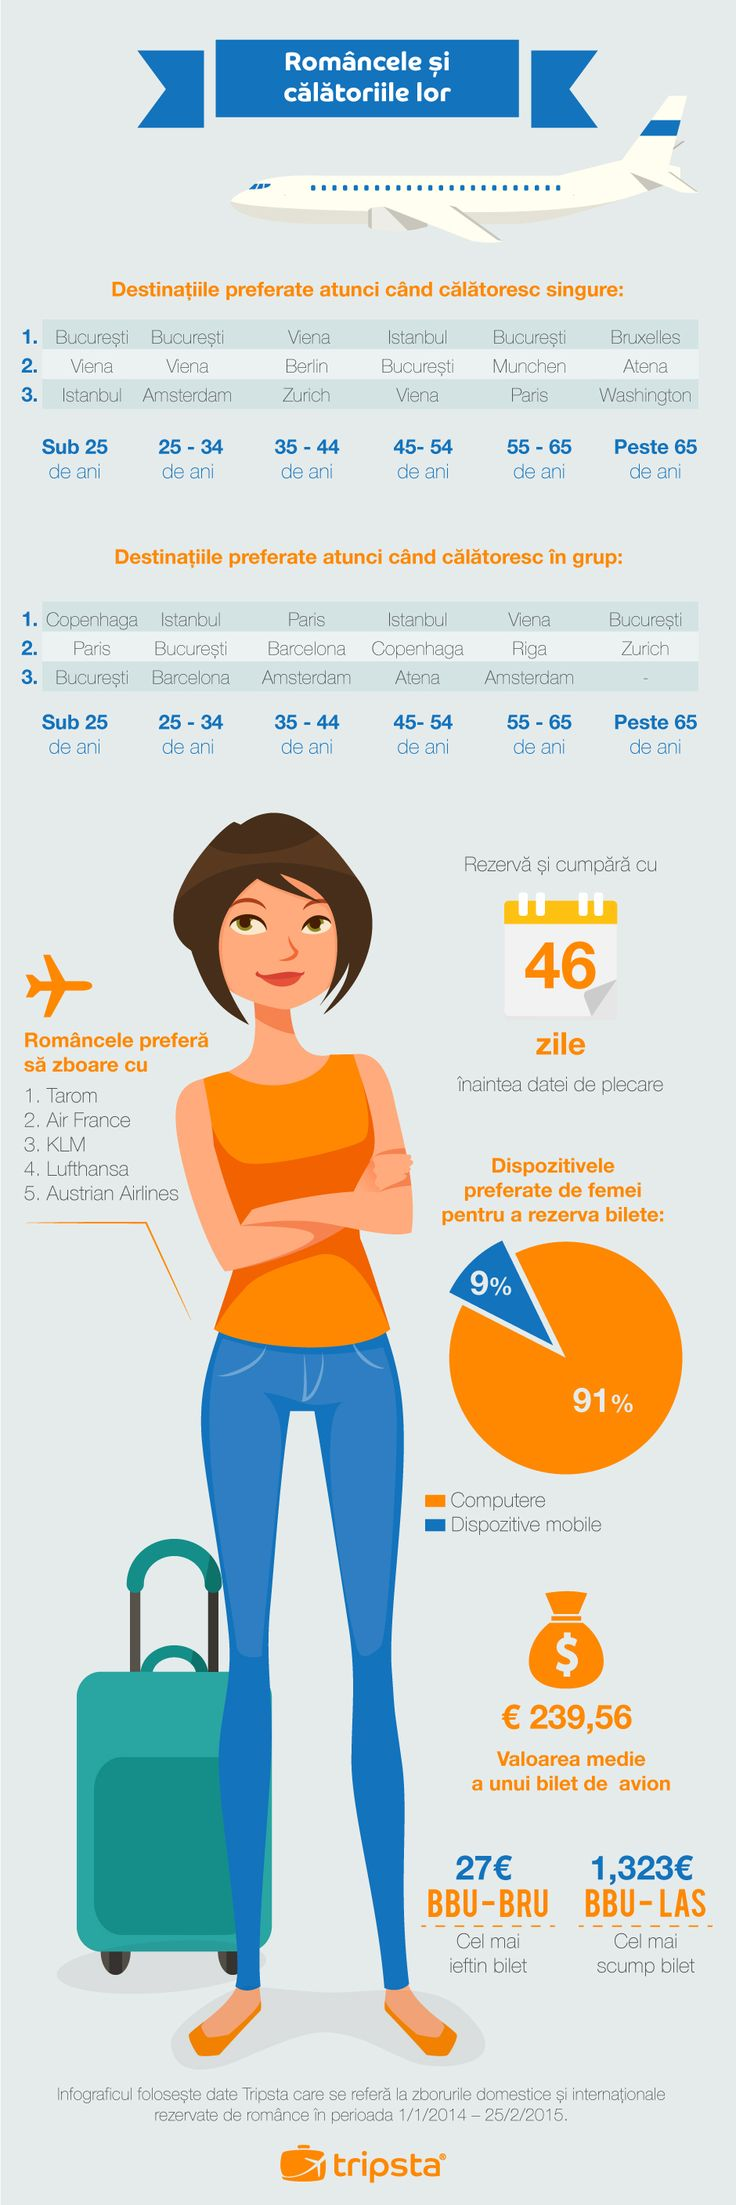 Solo Holidays - How Women Travel in Romania #tripsta #infographic